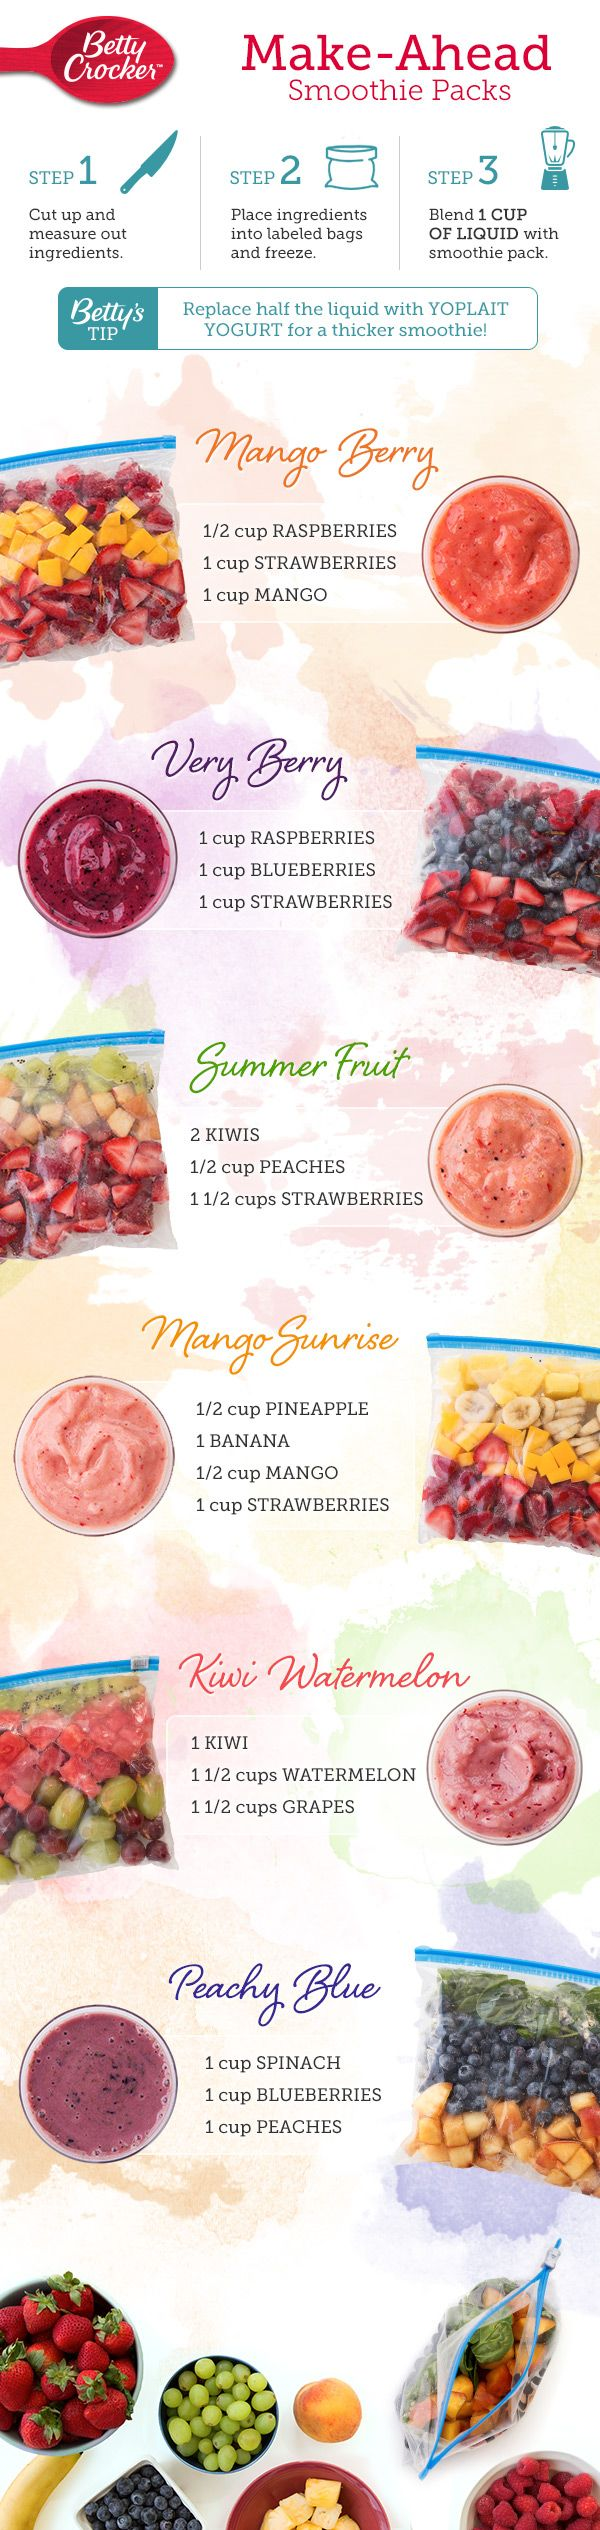 Don't have time to make #smoothies in the morning? Well then this is perfect for you! These make-ahead smoothie packs will completely change your mornings for the better. Just pre-pack the ingredients and keep them in the freezer until you are ready to pop them in your blender. It takes 5 minutes tops, and no clean-up!